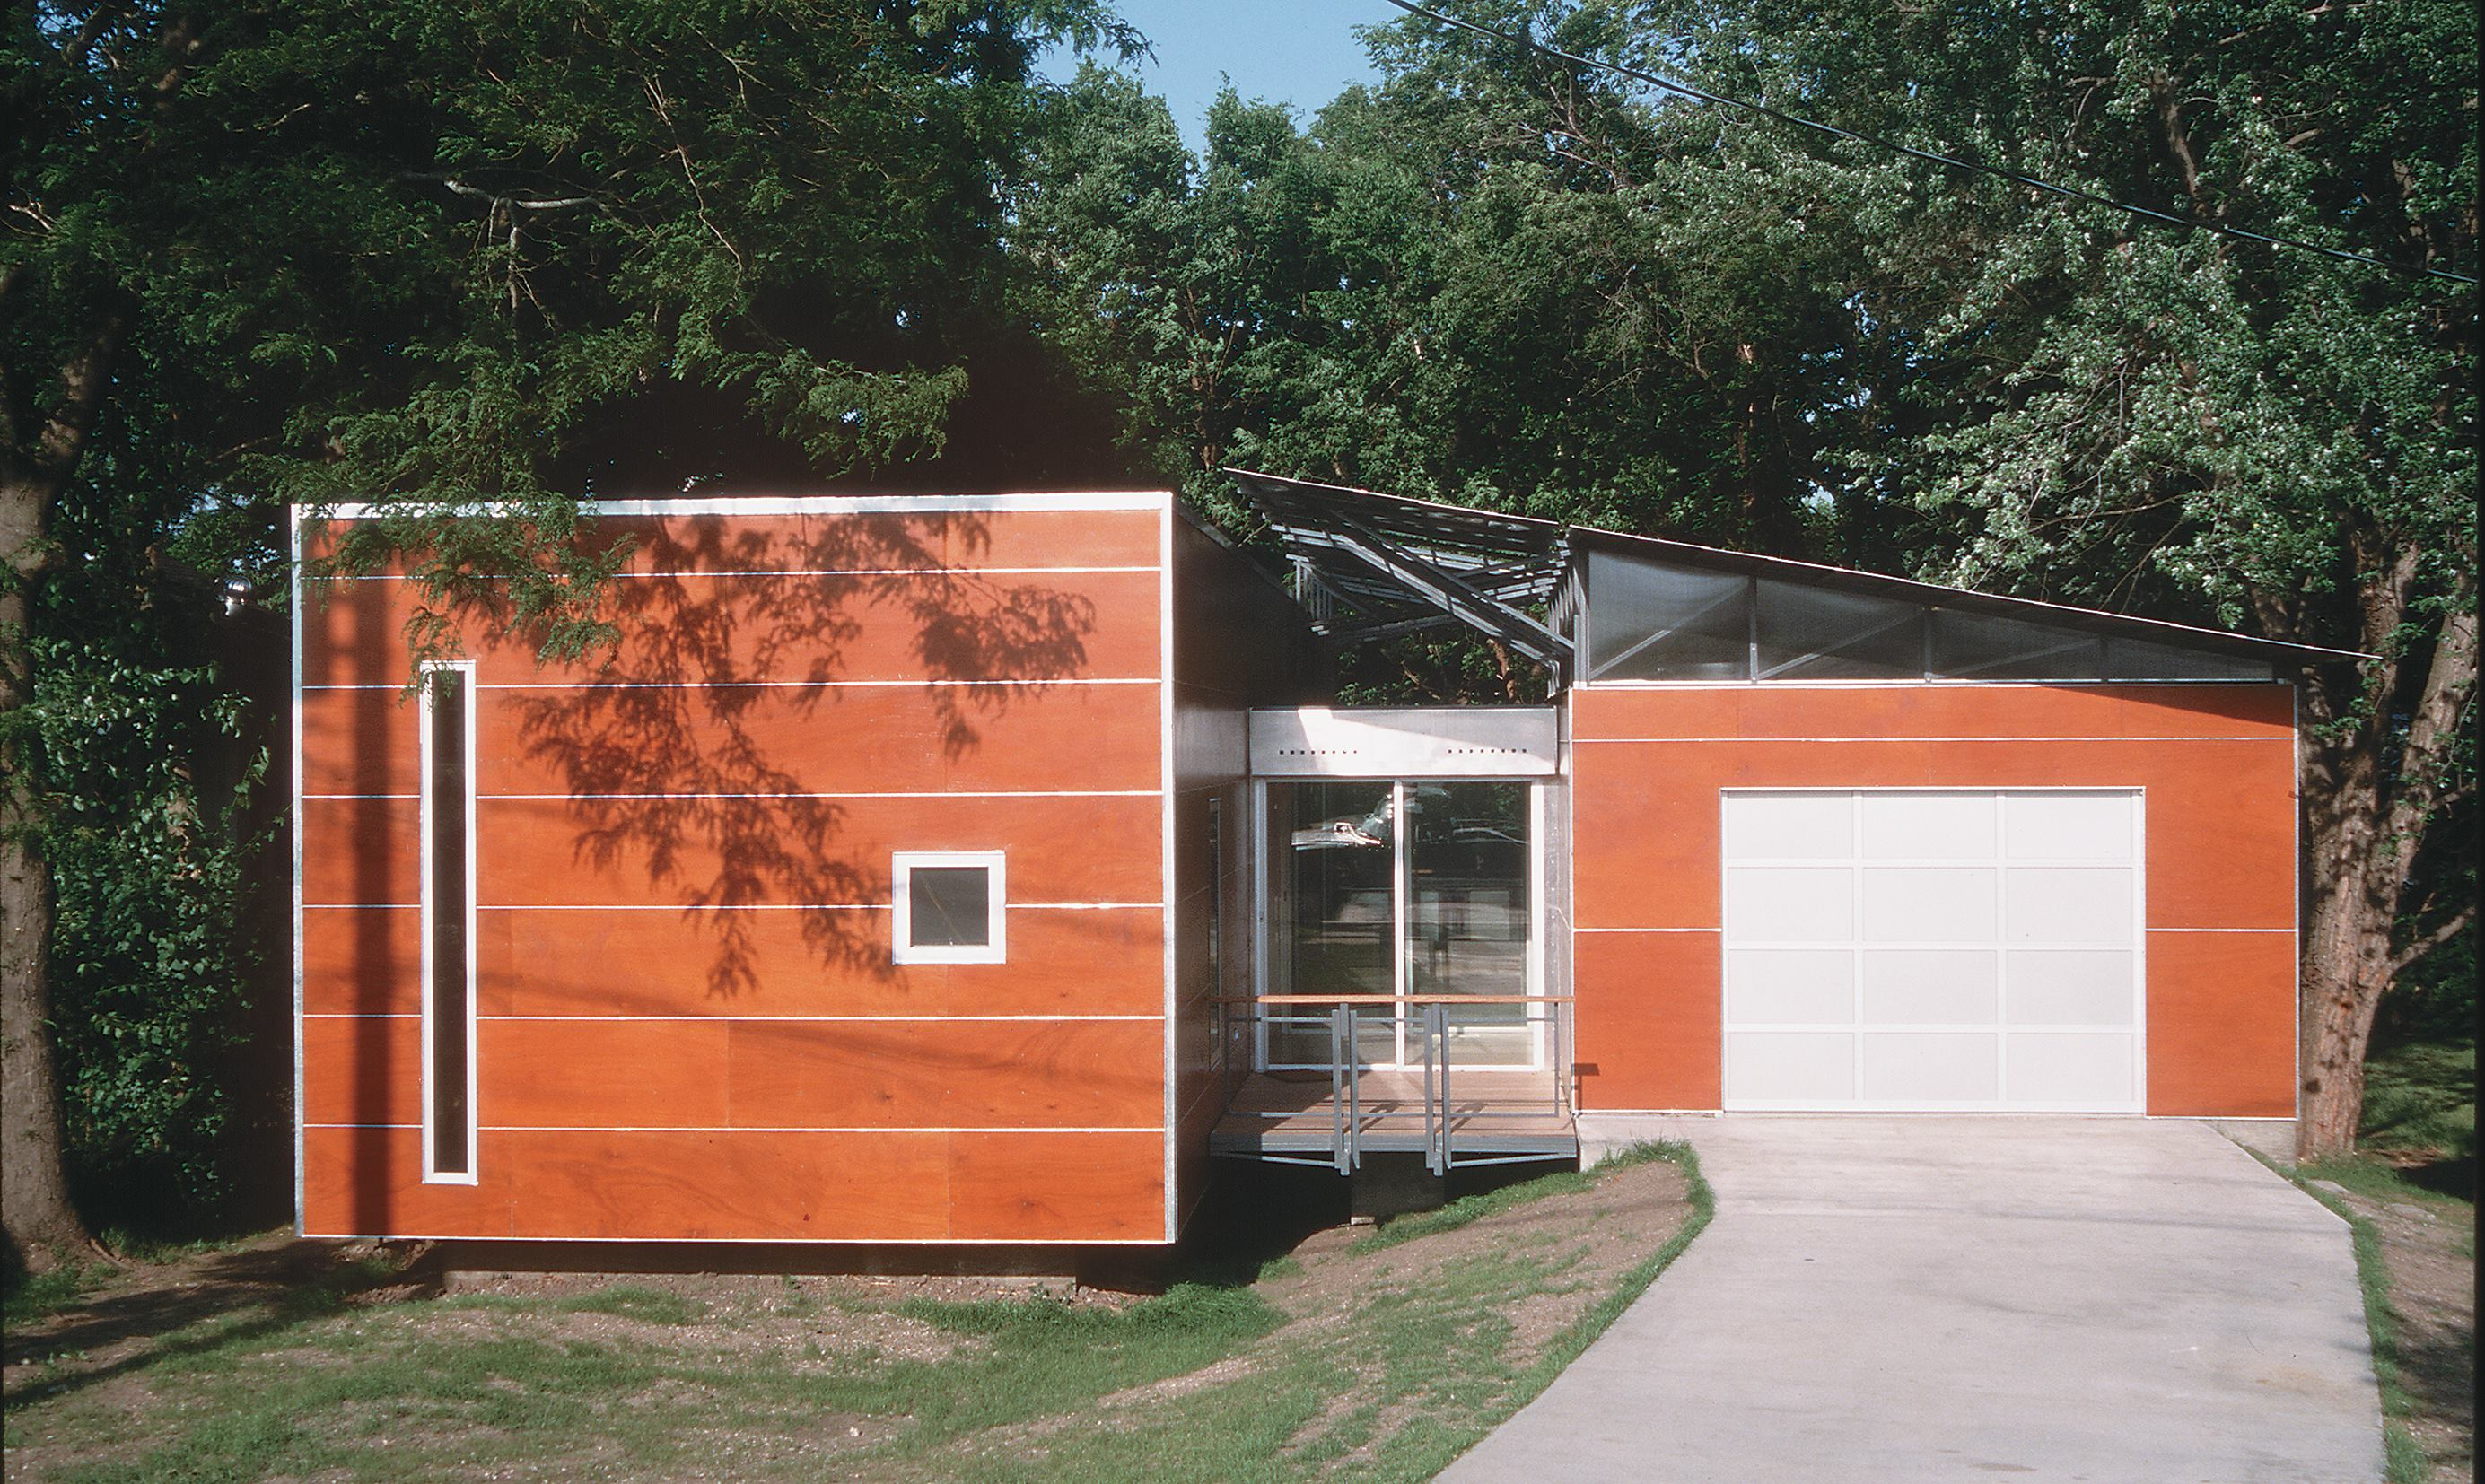 216 alabama lawrence kan residential architect for Residential architect design awards